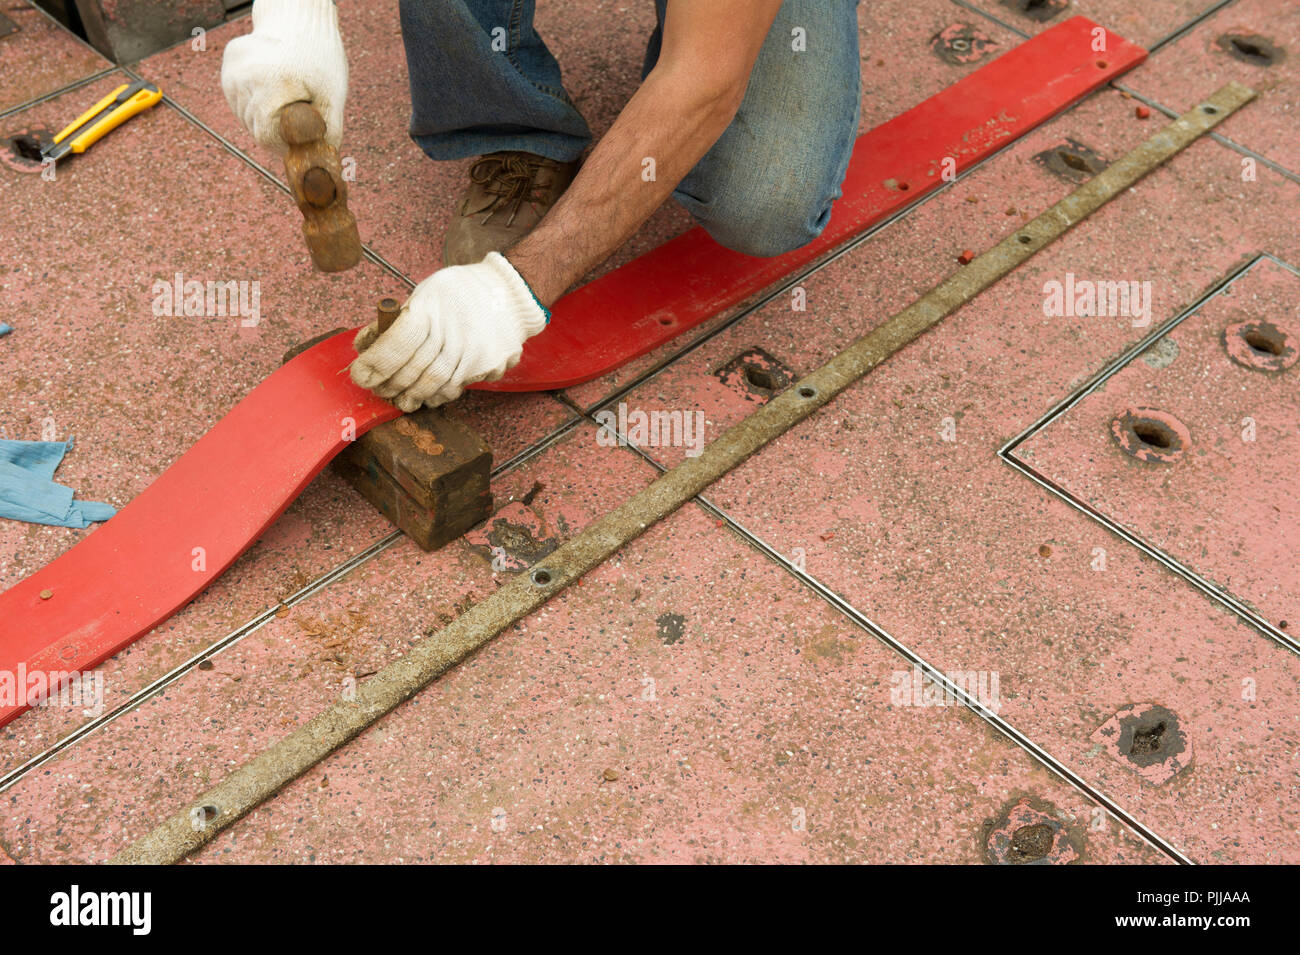 Worker wearing gloves, punching holes in leather strap, with hammer and punch tool. - Stock Image